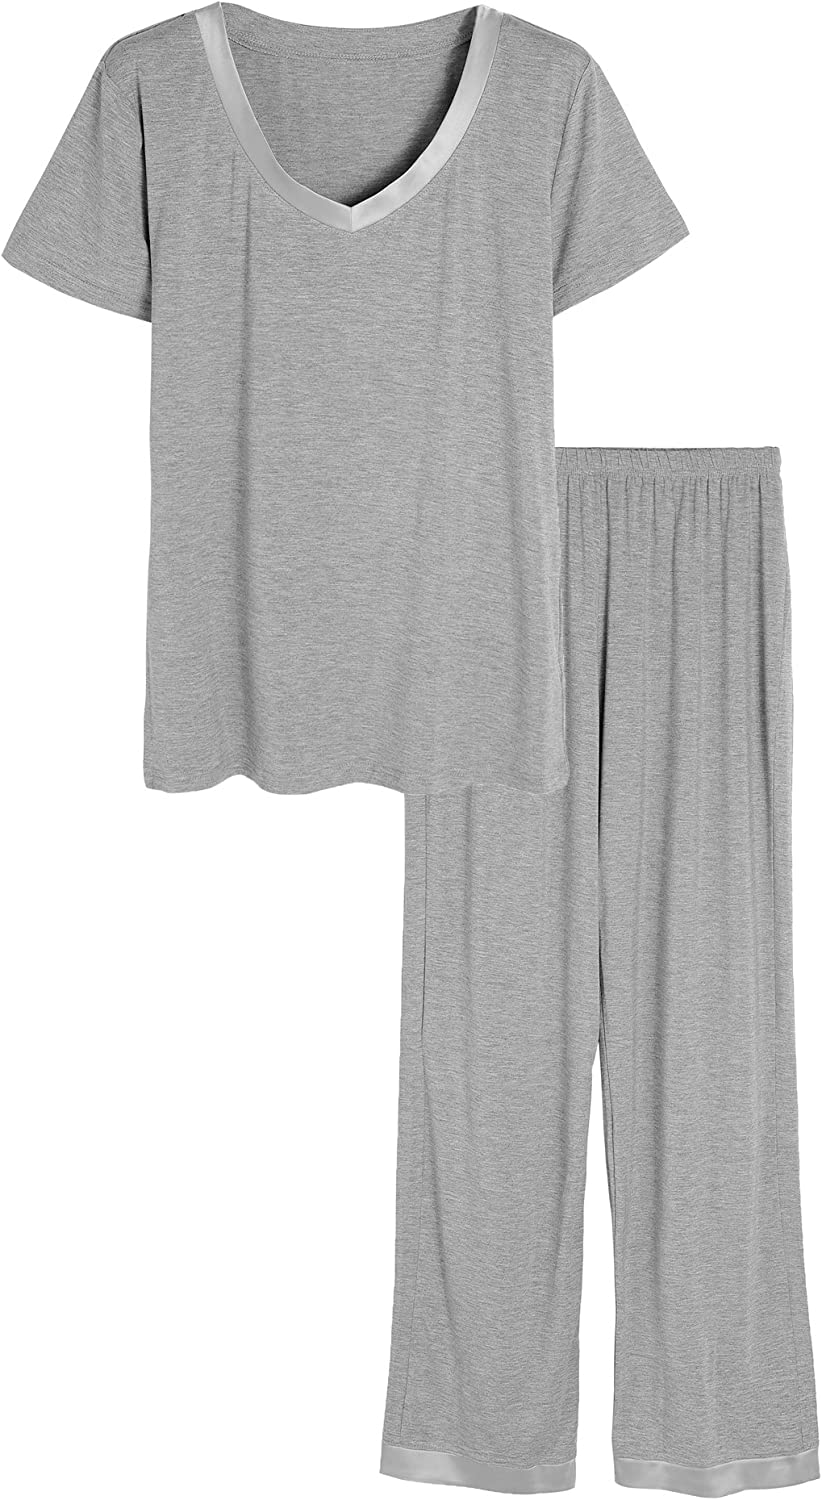 Latuza Women's V-Neck Sleepwear Short Sleeves Top with Pants Pajama Set